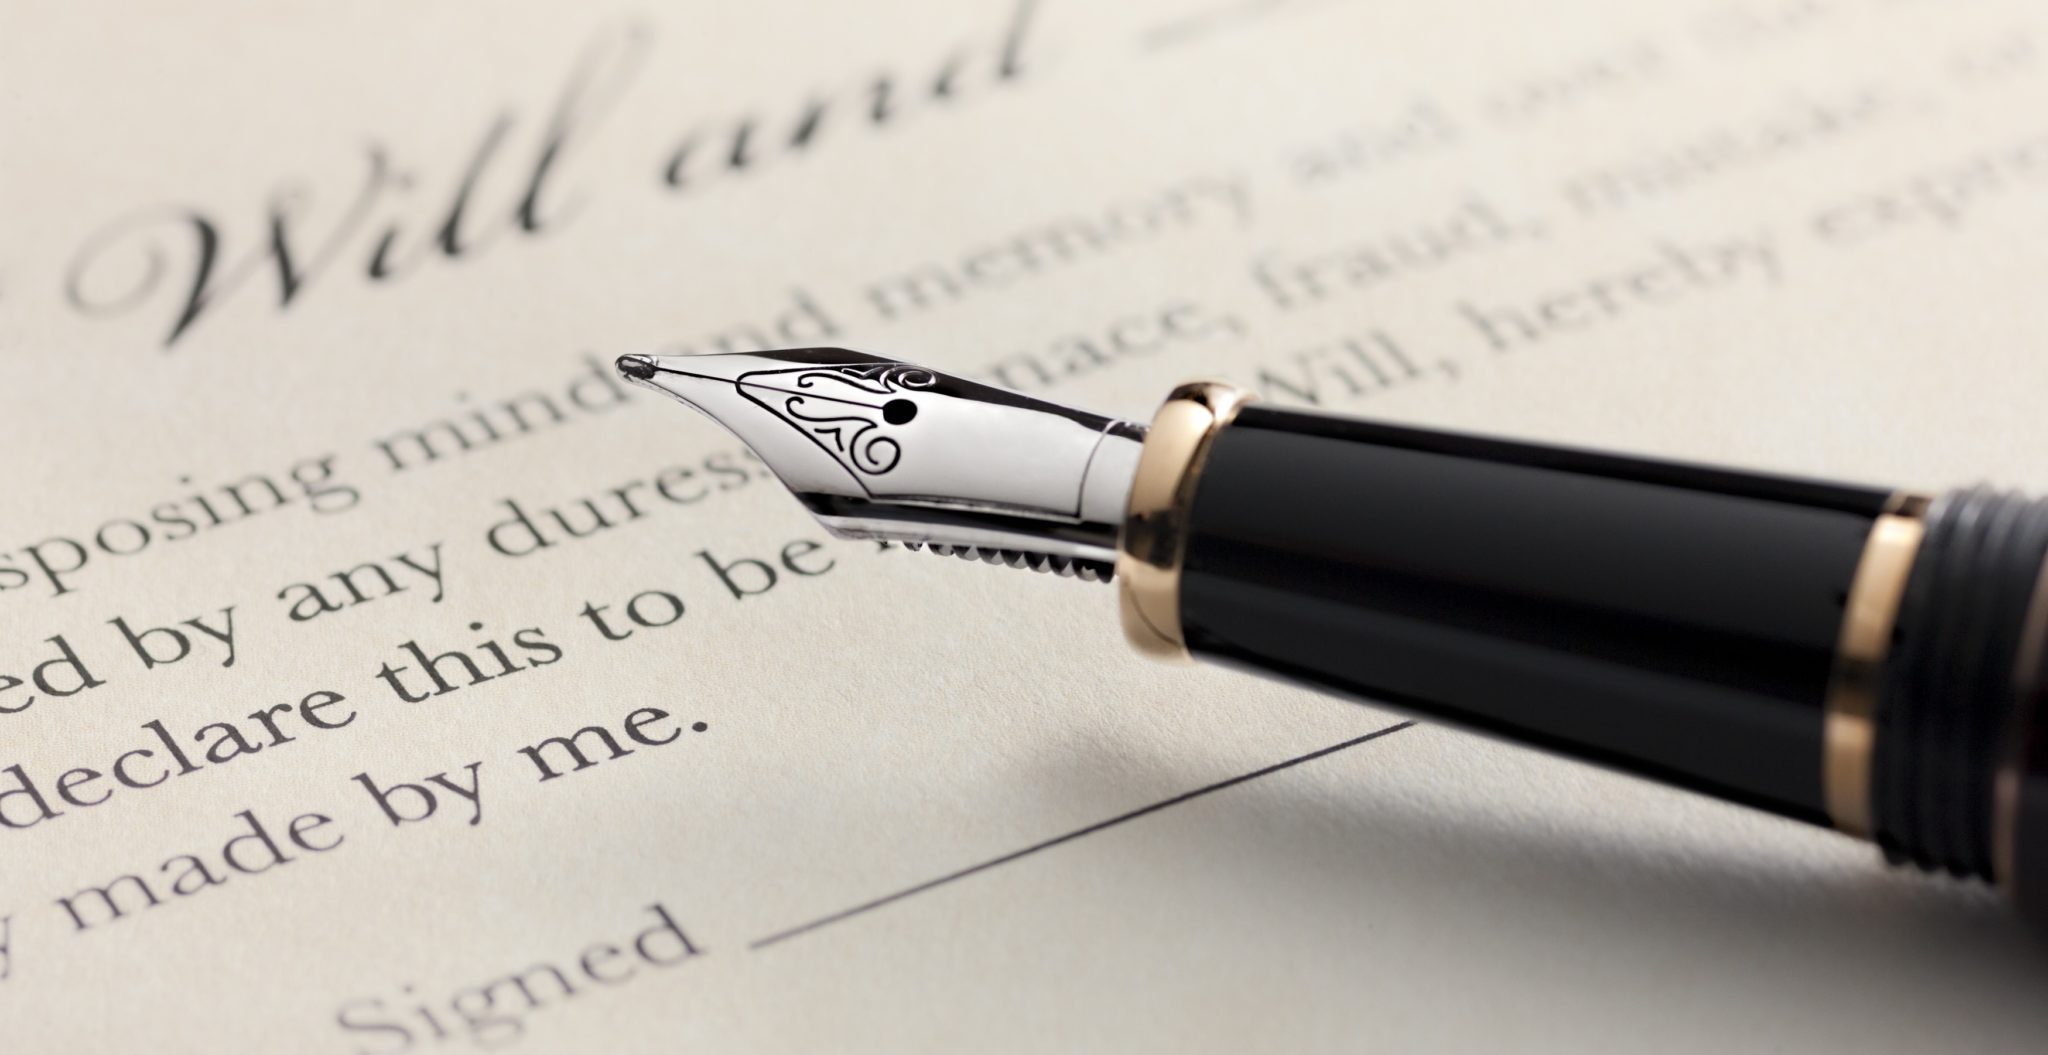 Pen on Last Will and Testament